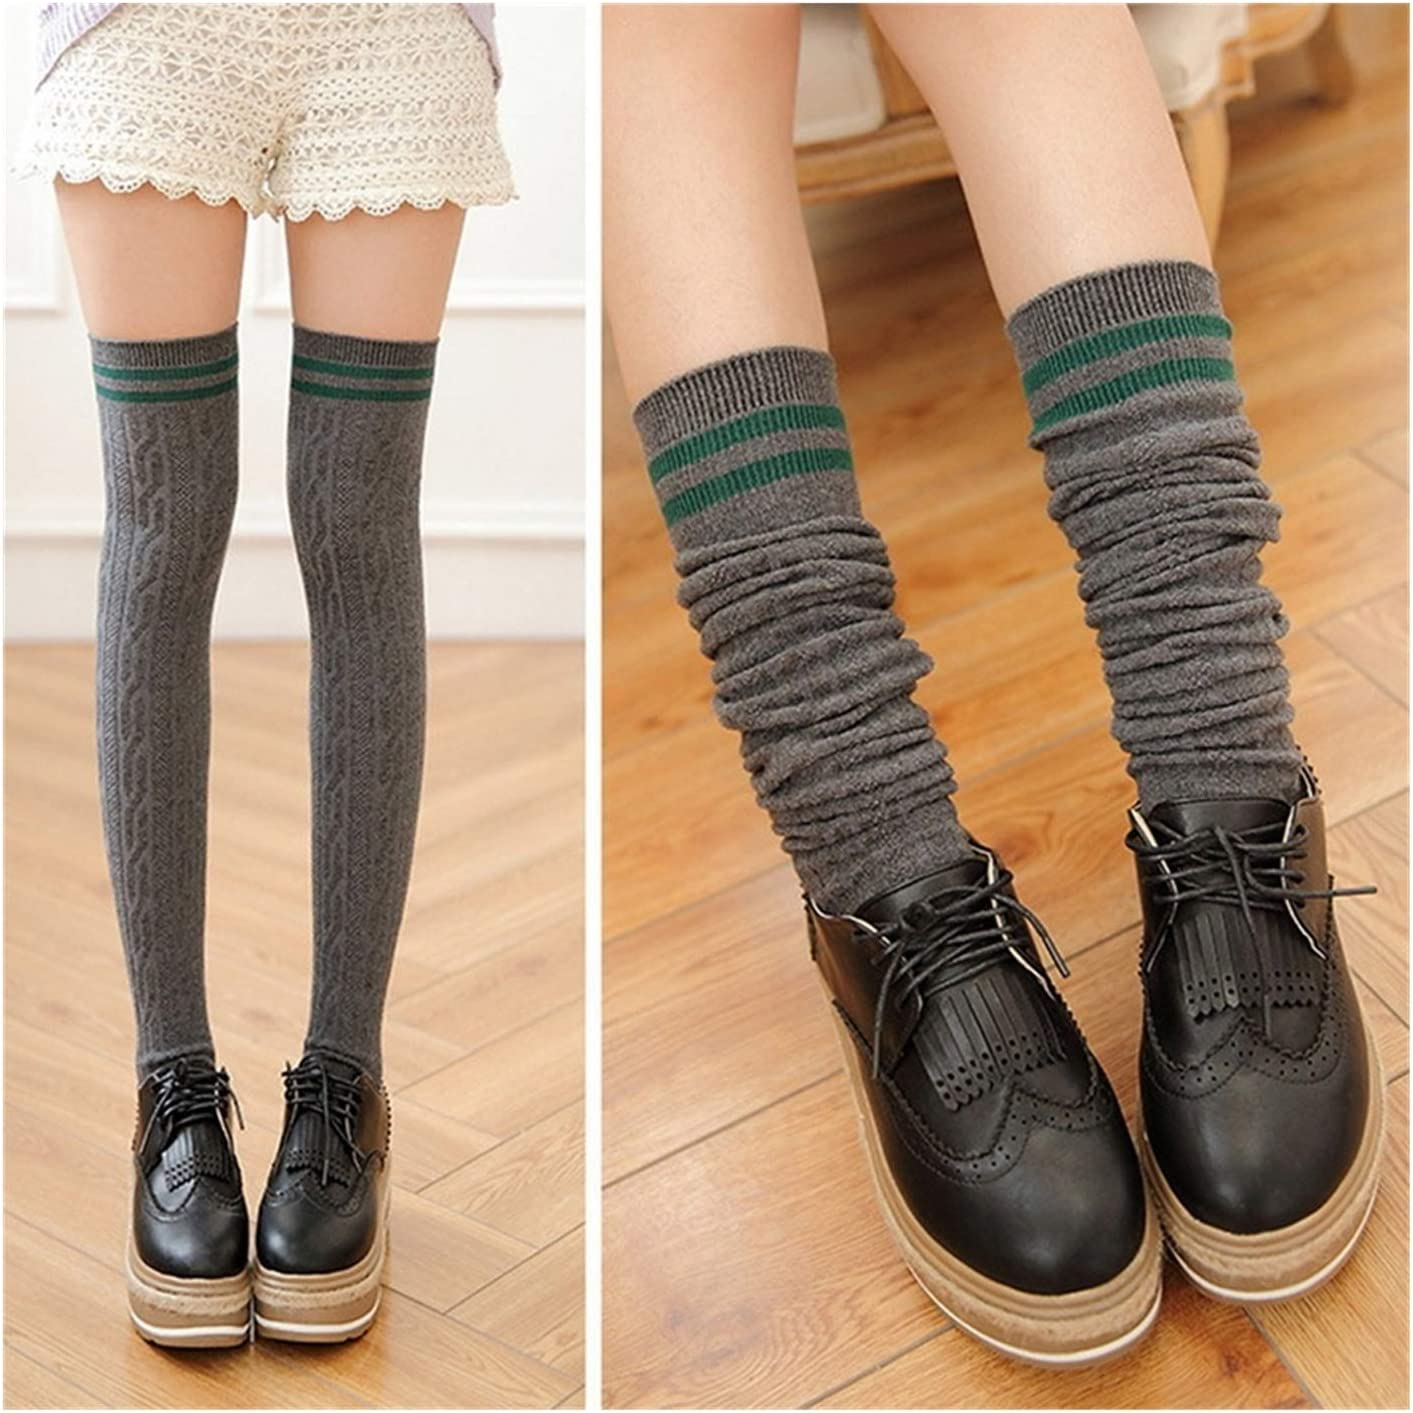 Extra Long Mid Thigh High Women Over Knee Leg Autumn Winter Knitted Stripe Long Stocking for Ladies Girls (Color : Dark Gray, Size : One Size)